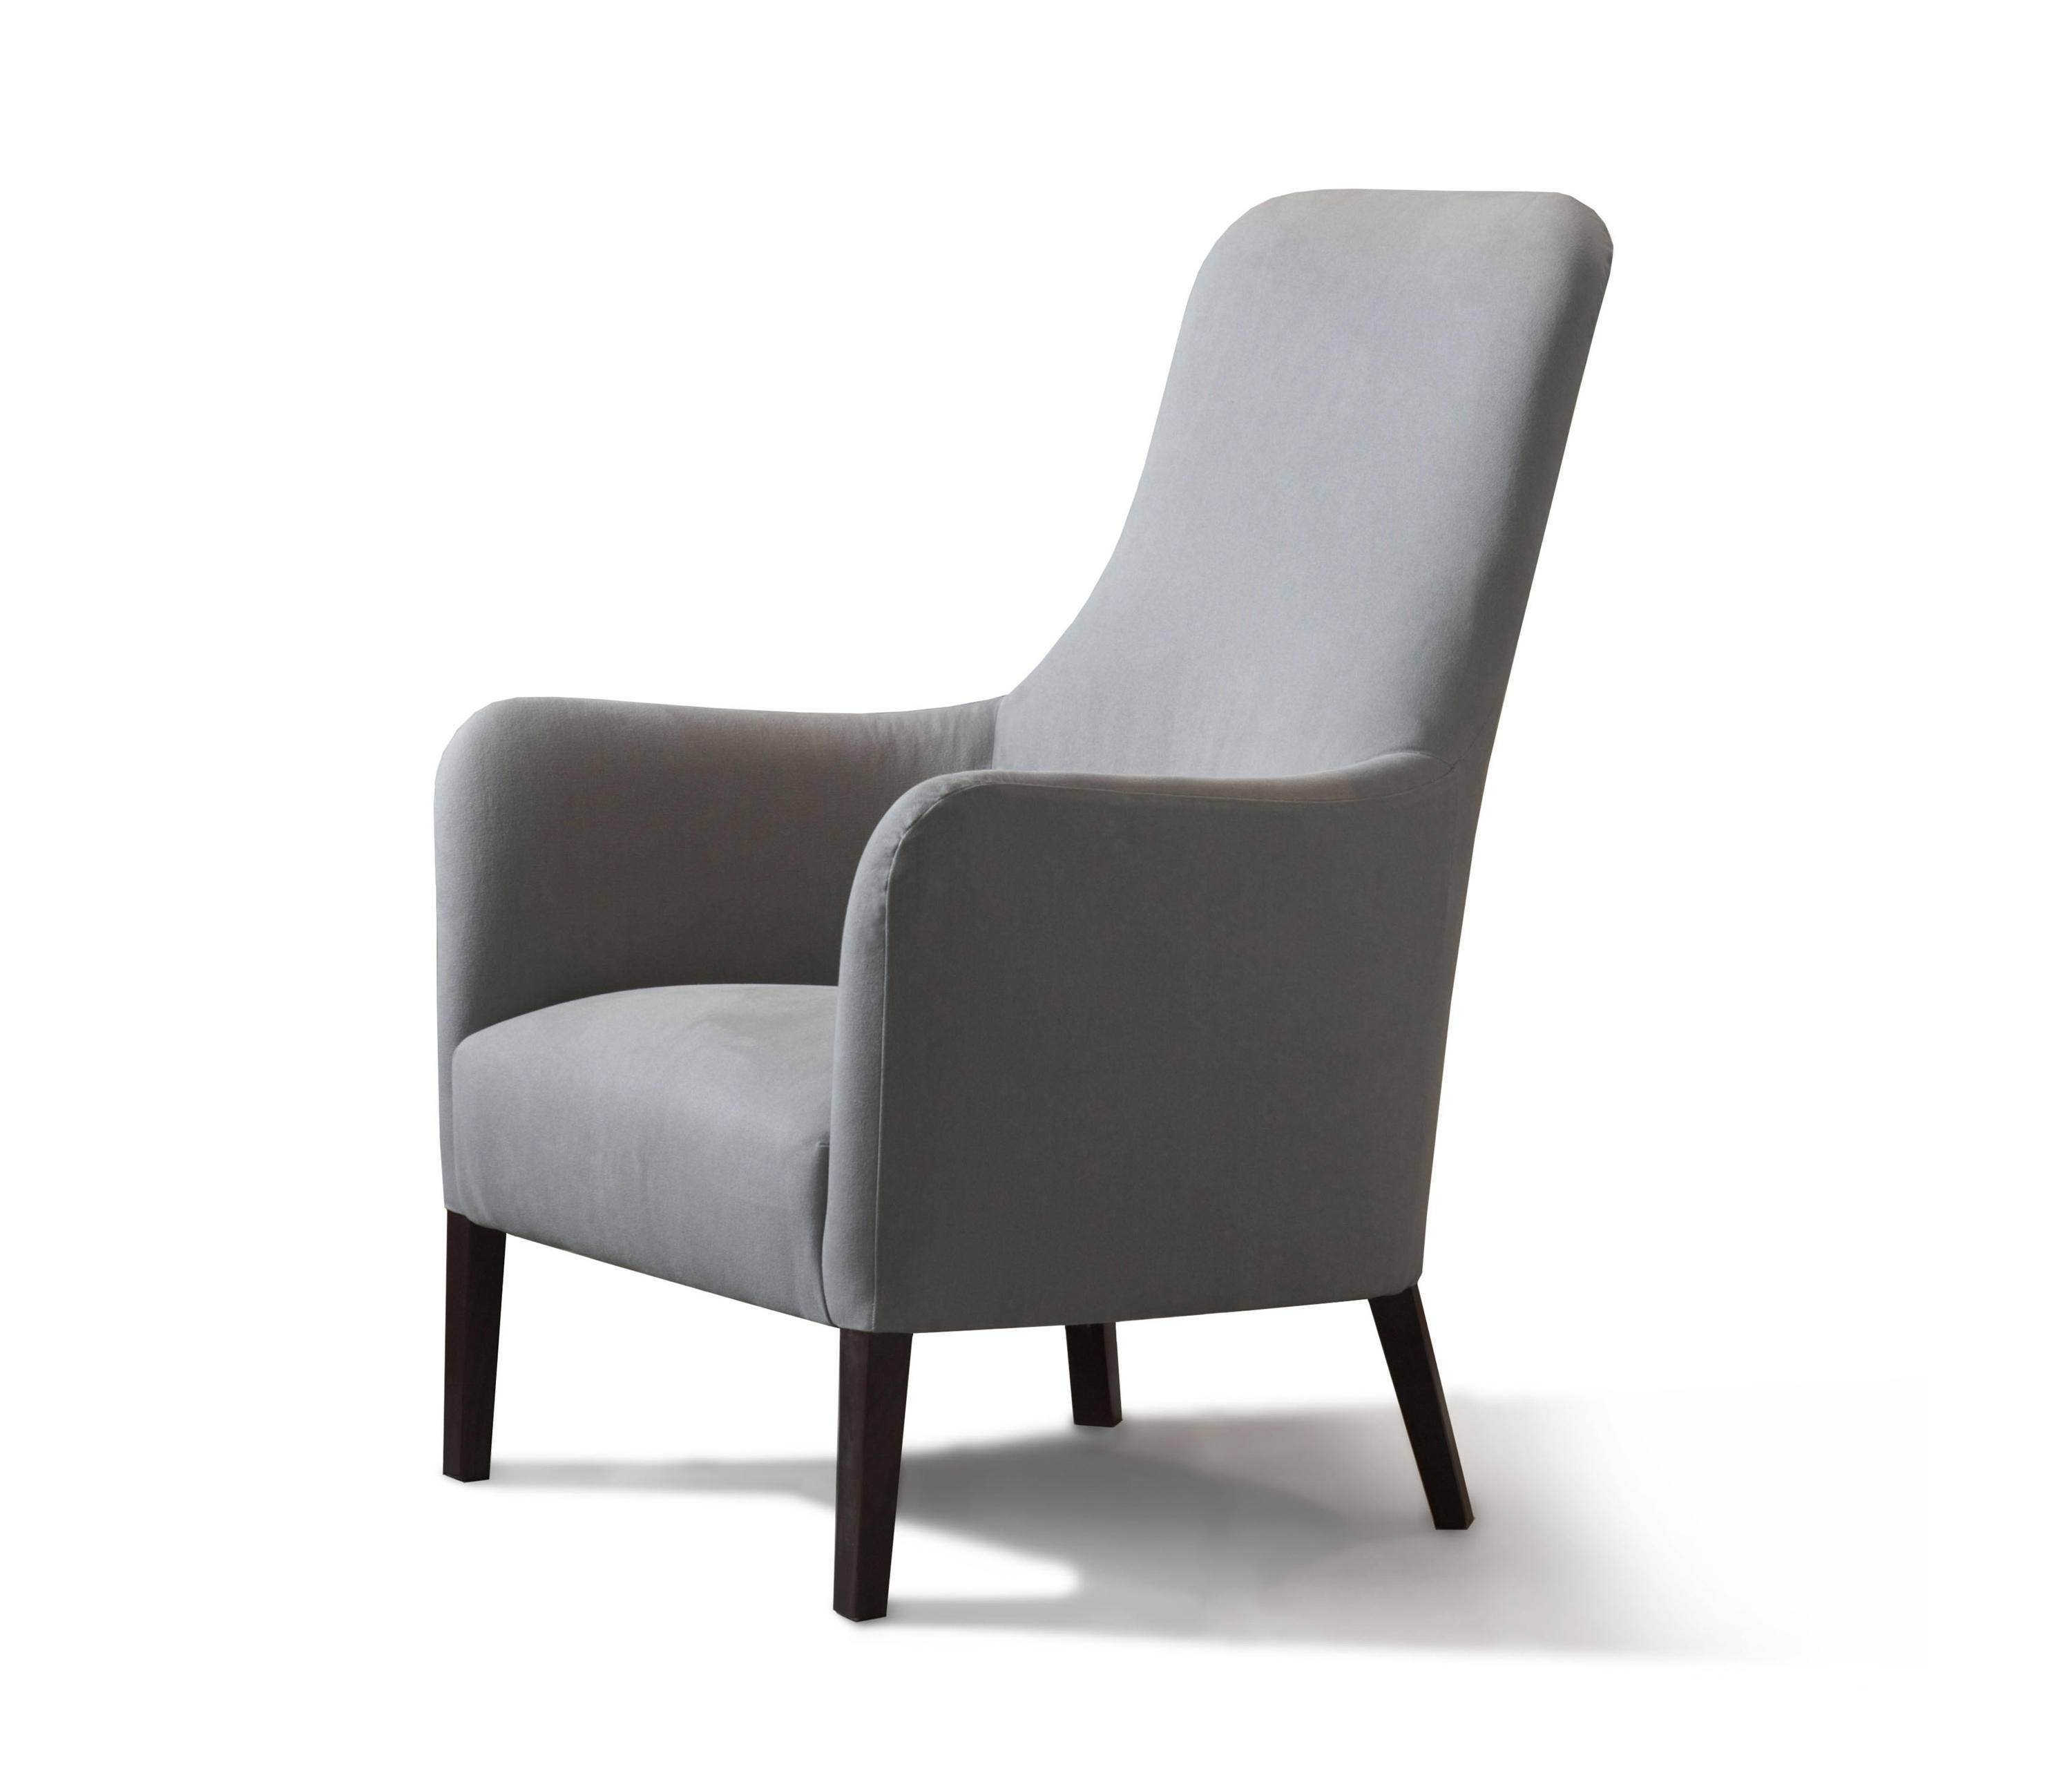 Pendel Armchair - Lounge Chairs From Pinch | Architonic regarding Compact Armchairs (Image 27 of 30)